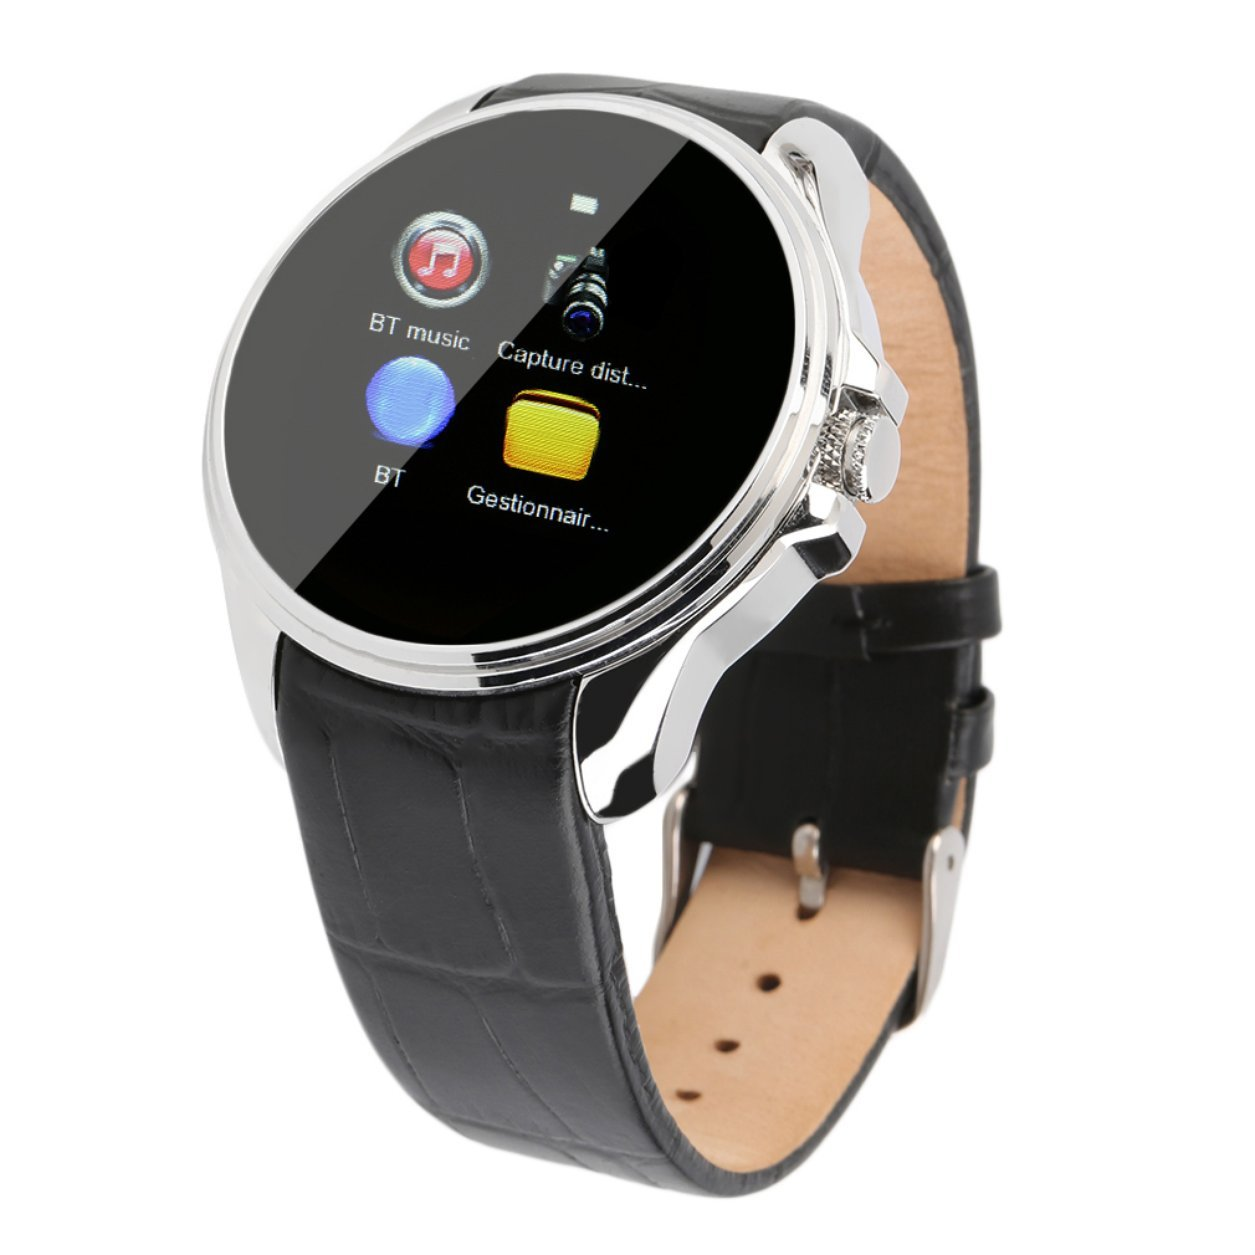 Cool Fashion Mini Phone Camera Android 4.4 iOS 7 Bluetooth Smart Watch(Color:Silver) B07KP68FT2 銀